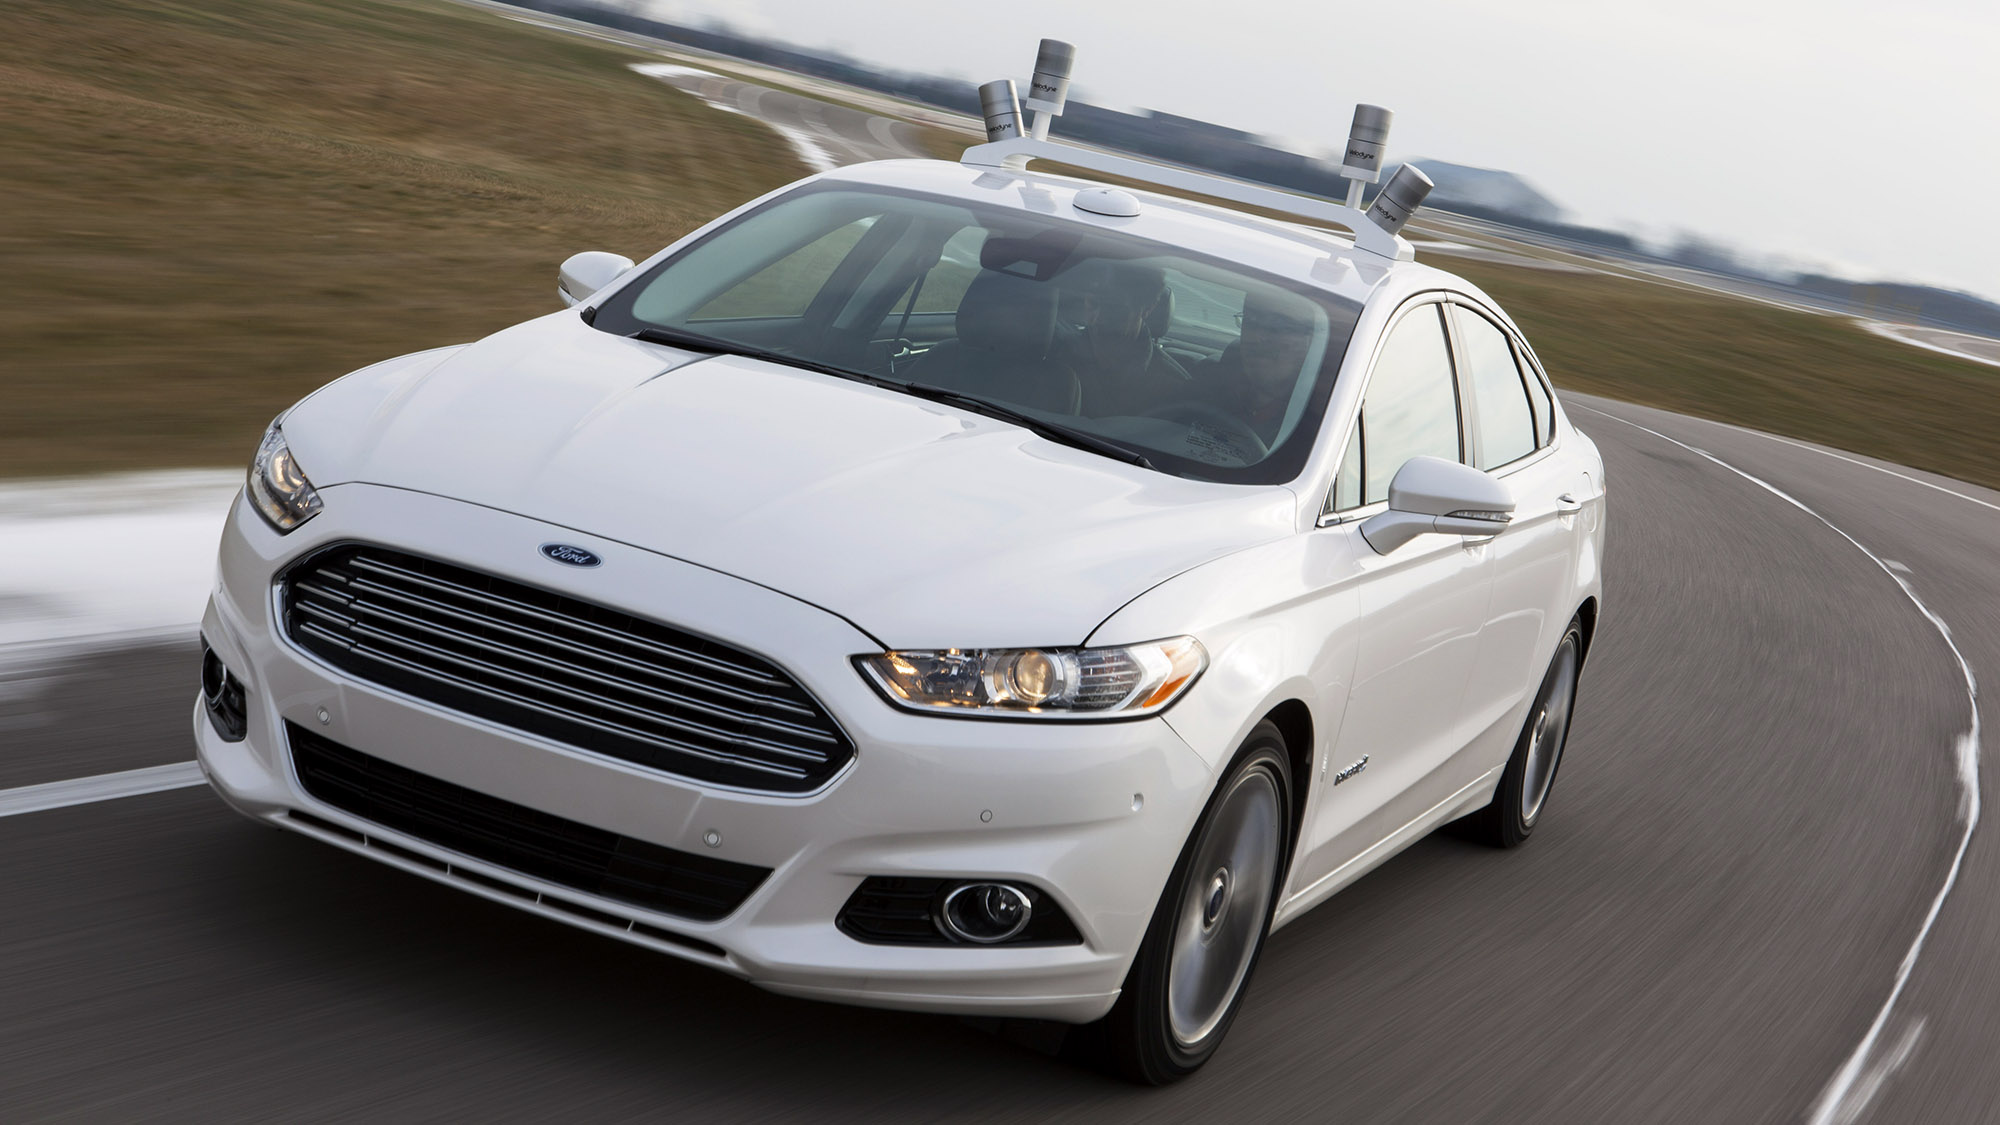 Ford Fusion Hybrid self driving